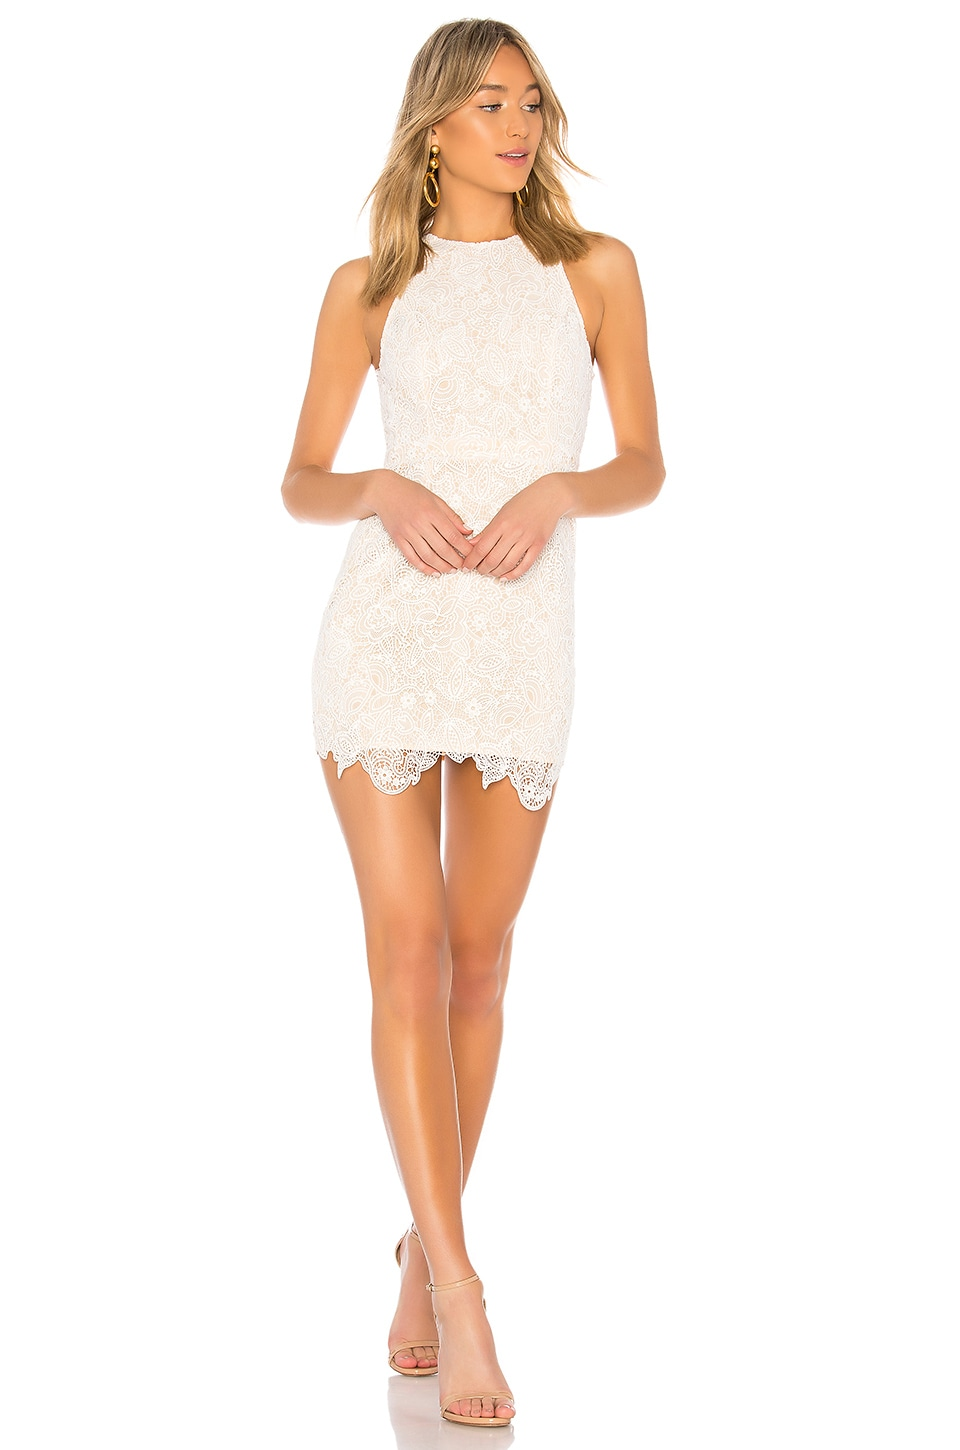 Patty High Neck Crochet Dress             superdown                                                                                                       CA$ 110.90 31